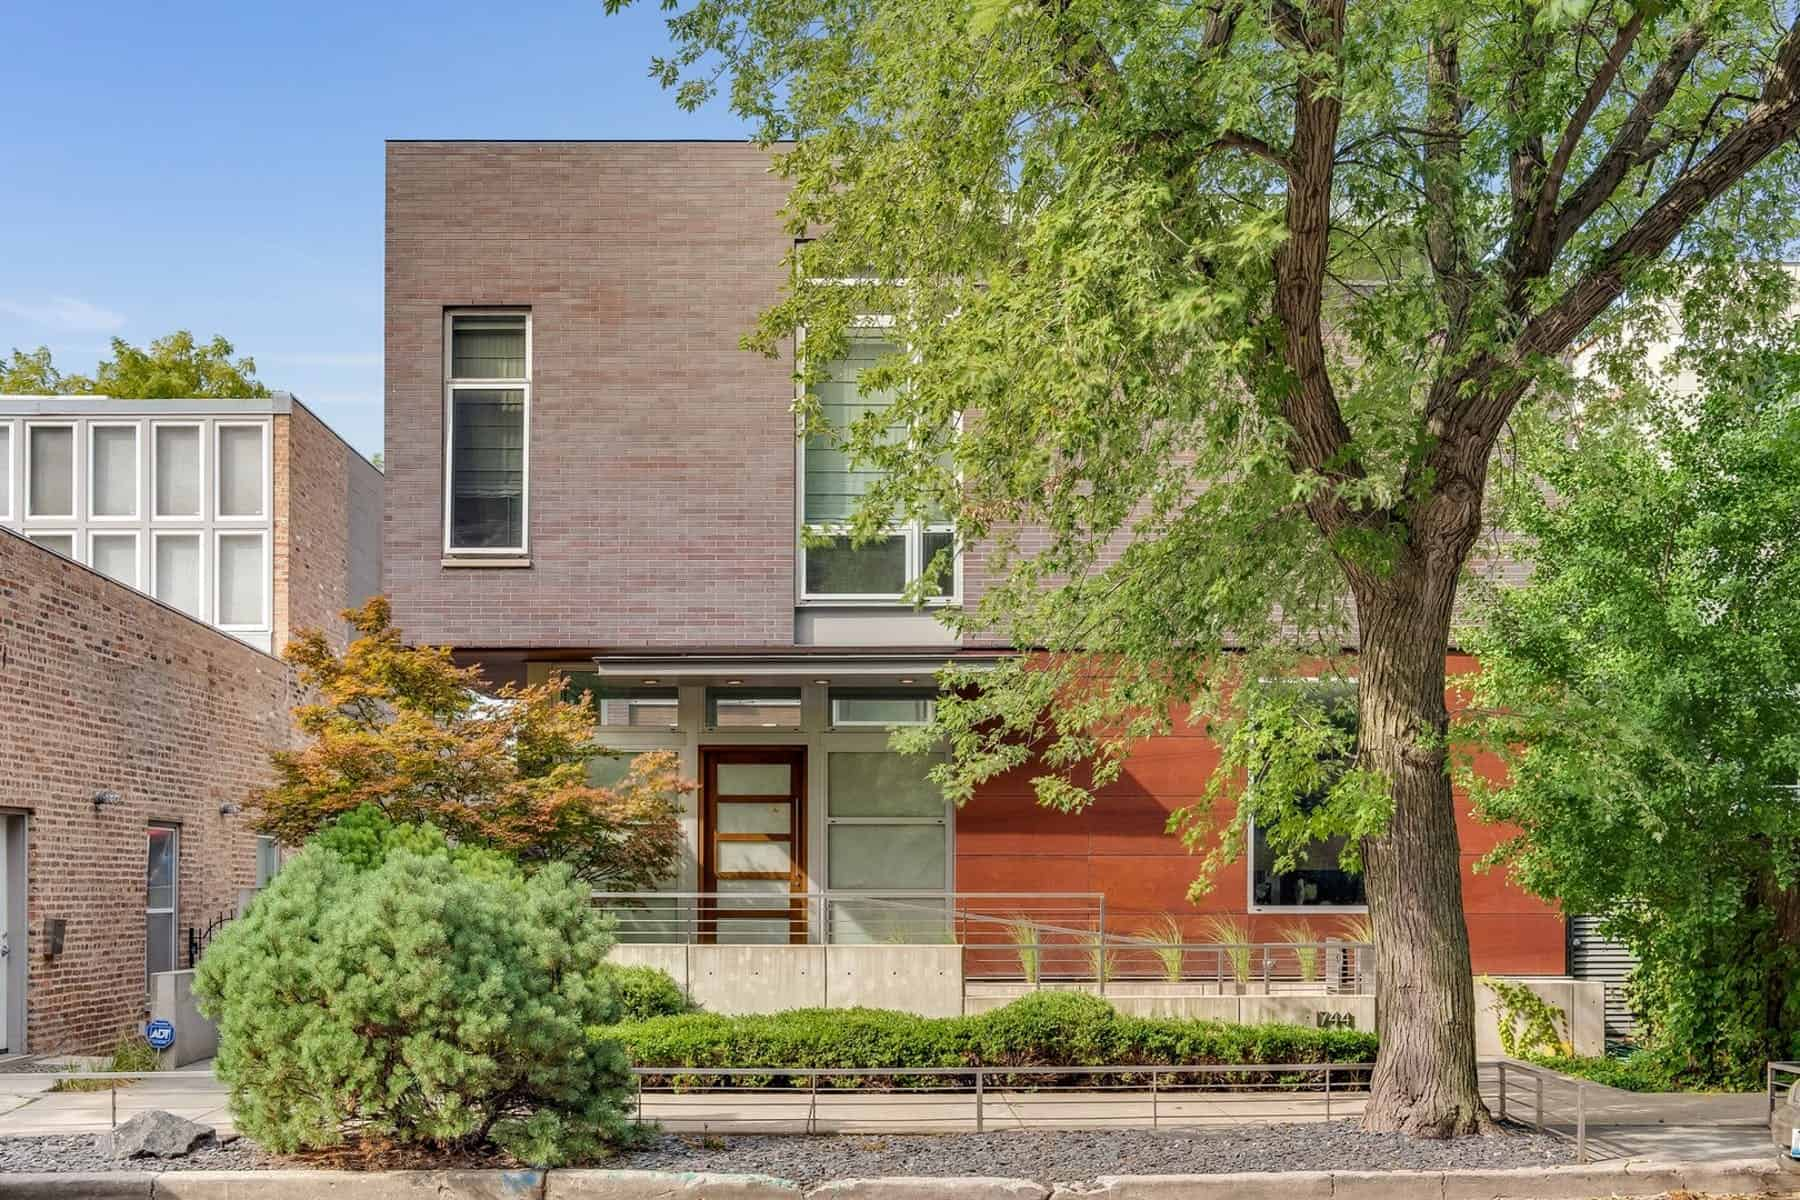 The Cortland residence is made of red brick exterior with healthy plants and trees surrounding the property.